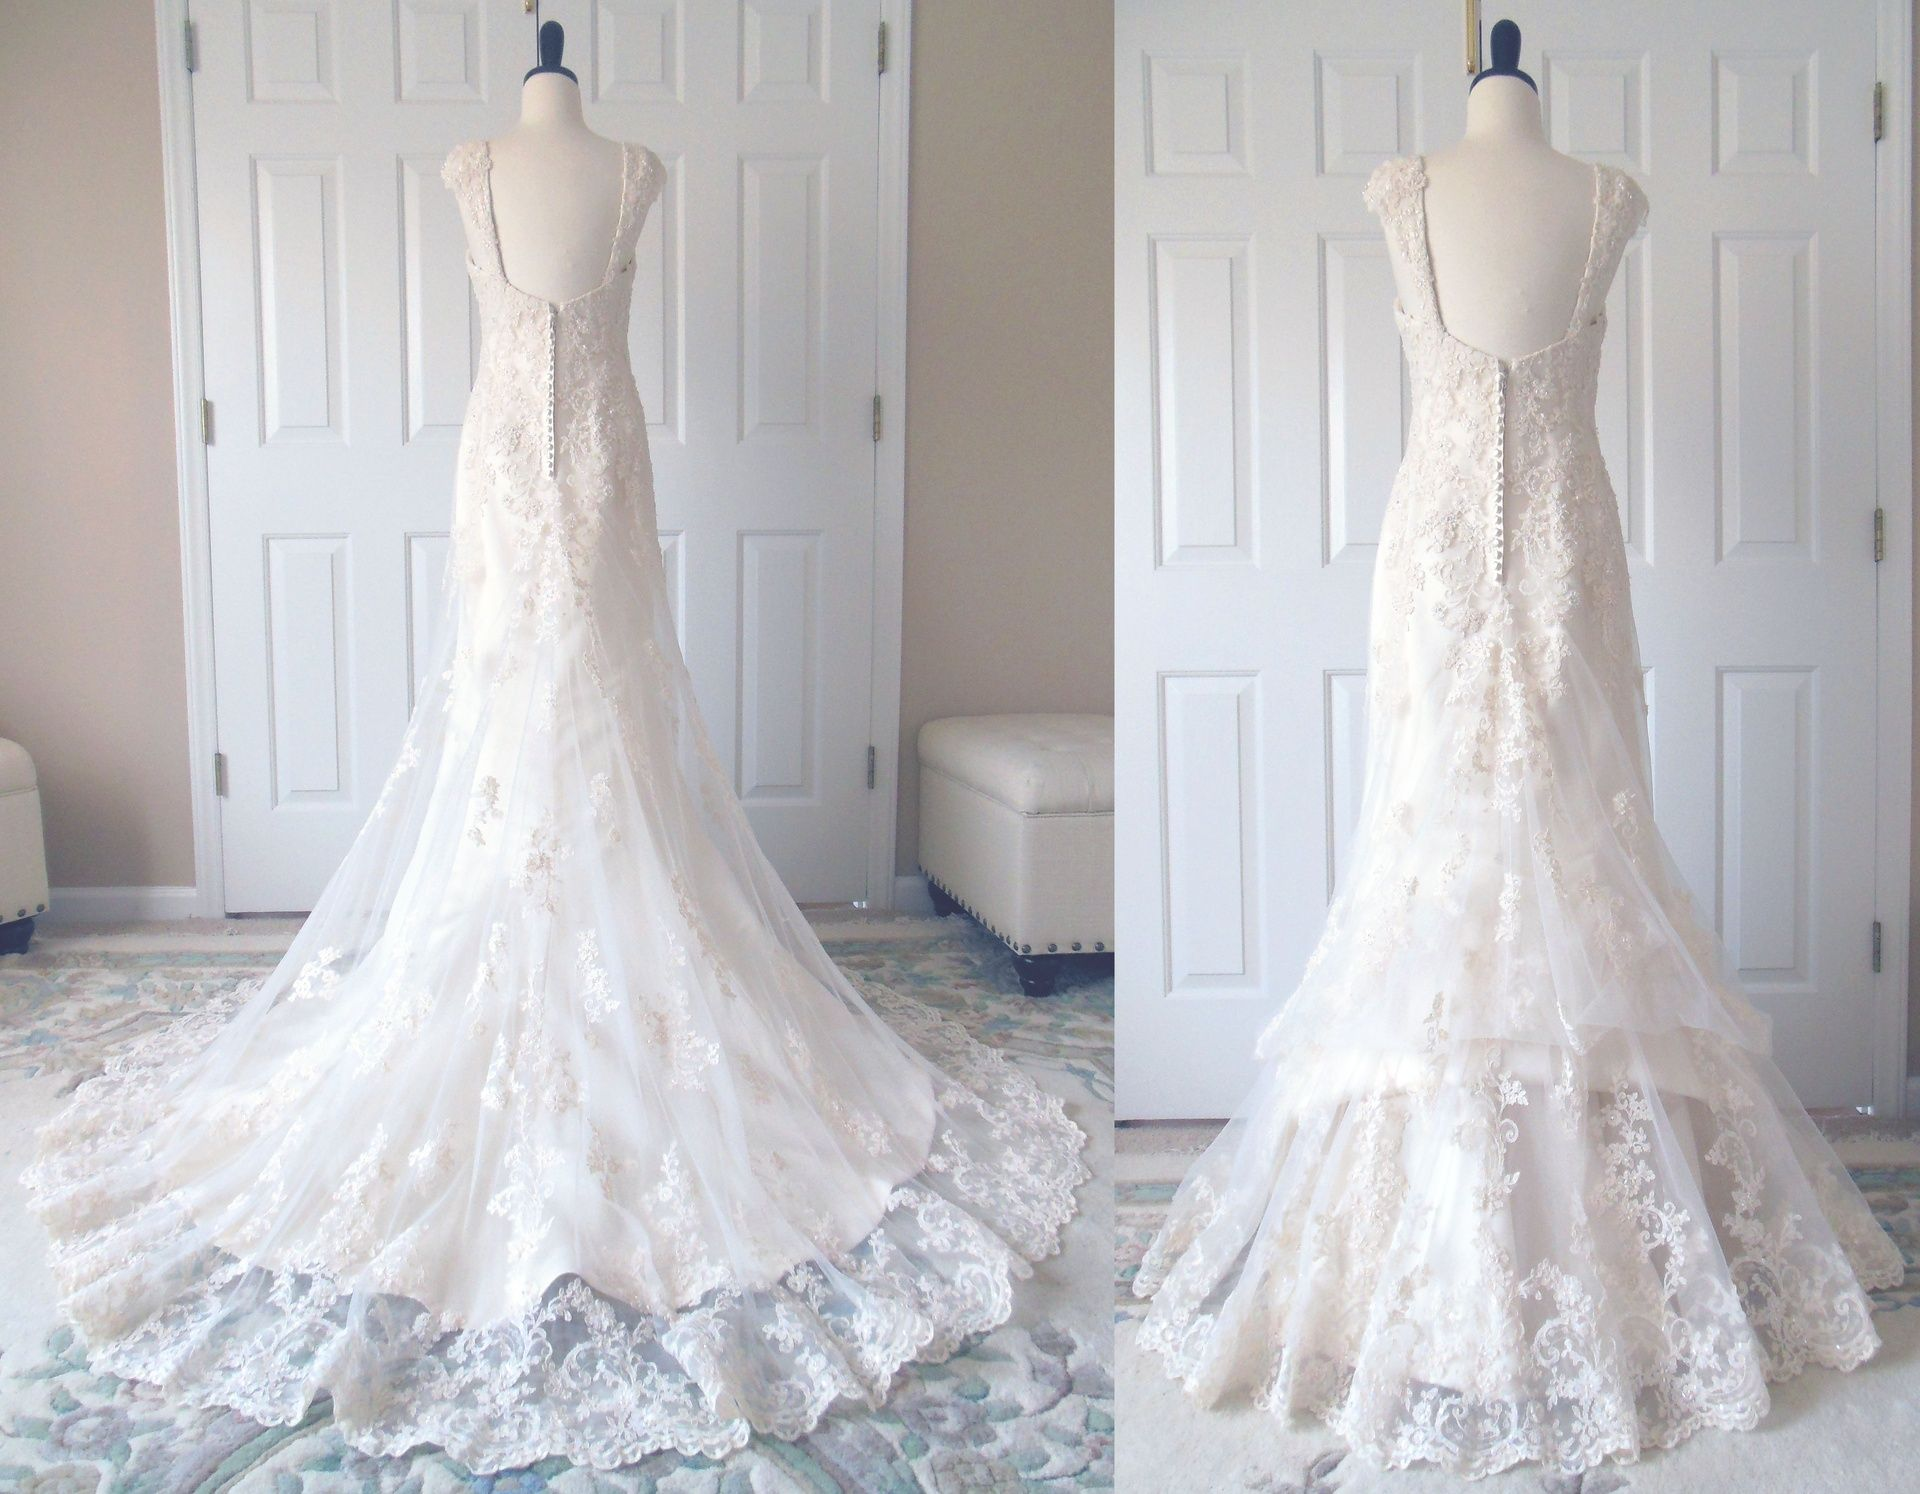 A Traditional 4-point Bustle In The Lace Overlay. A French